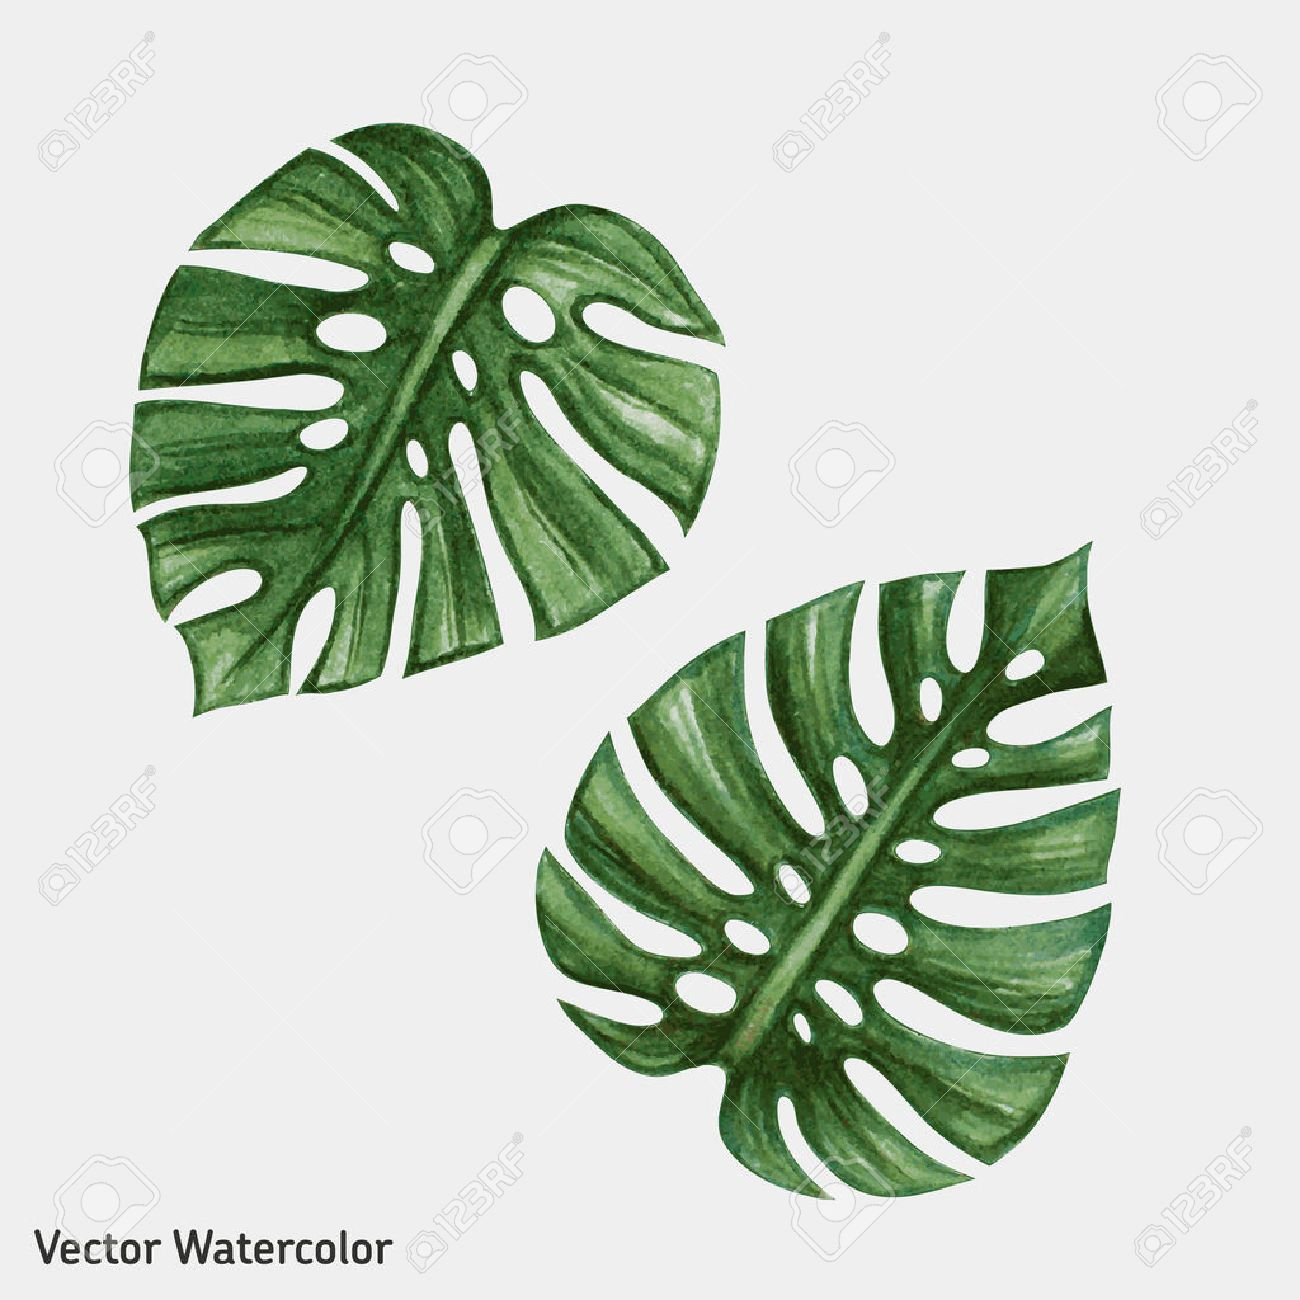 Watercolor tropical palm leaves. Vector illustration. - 45007989